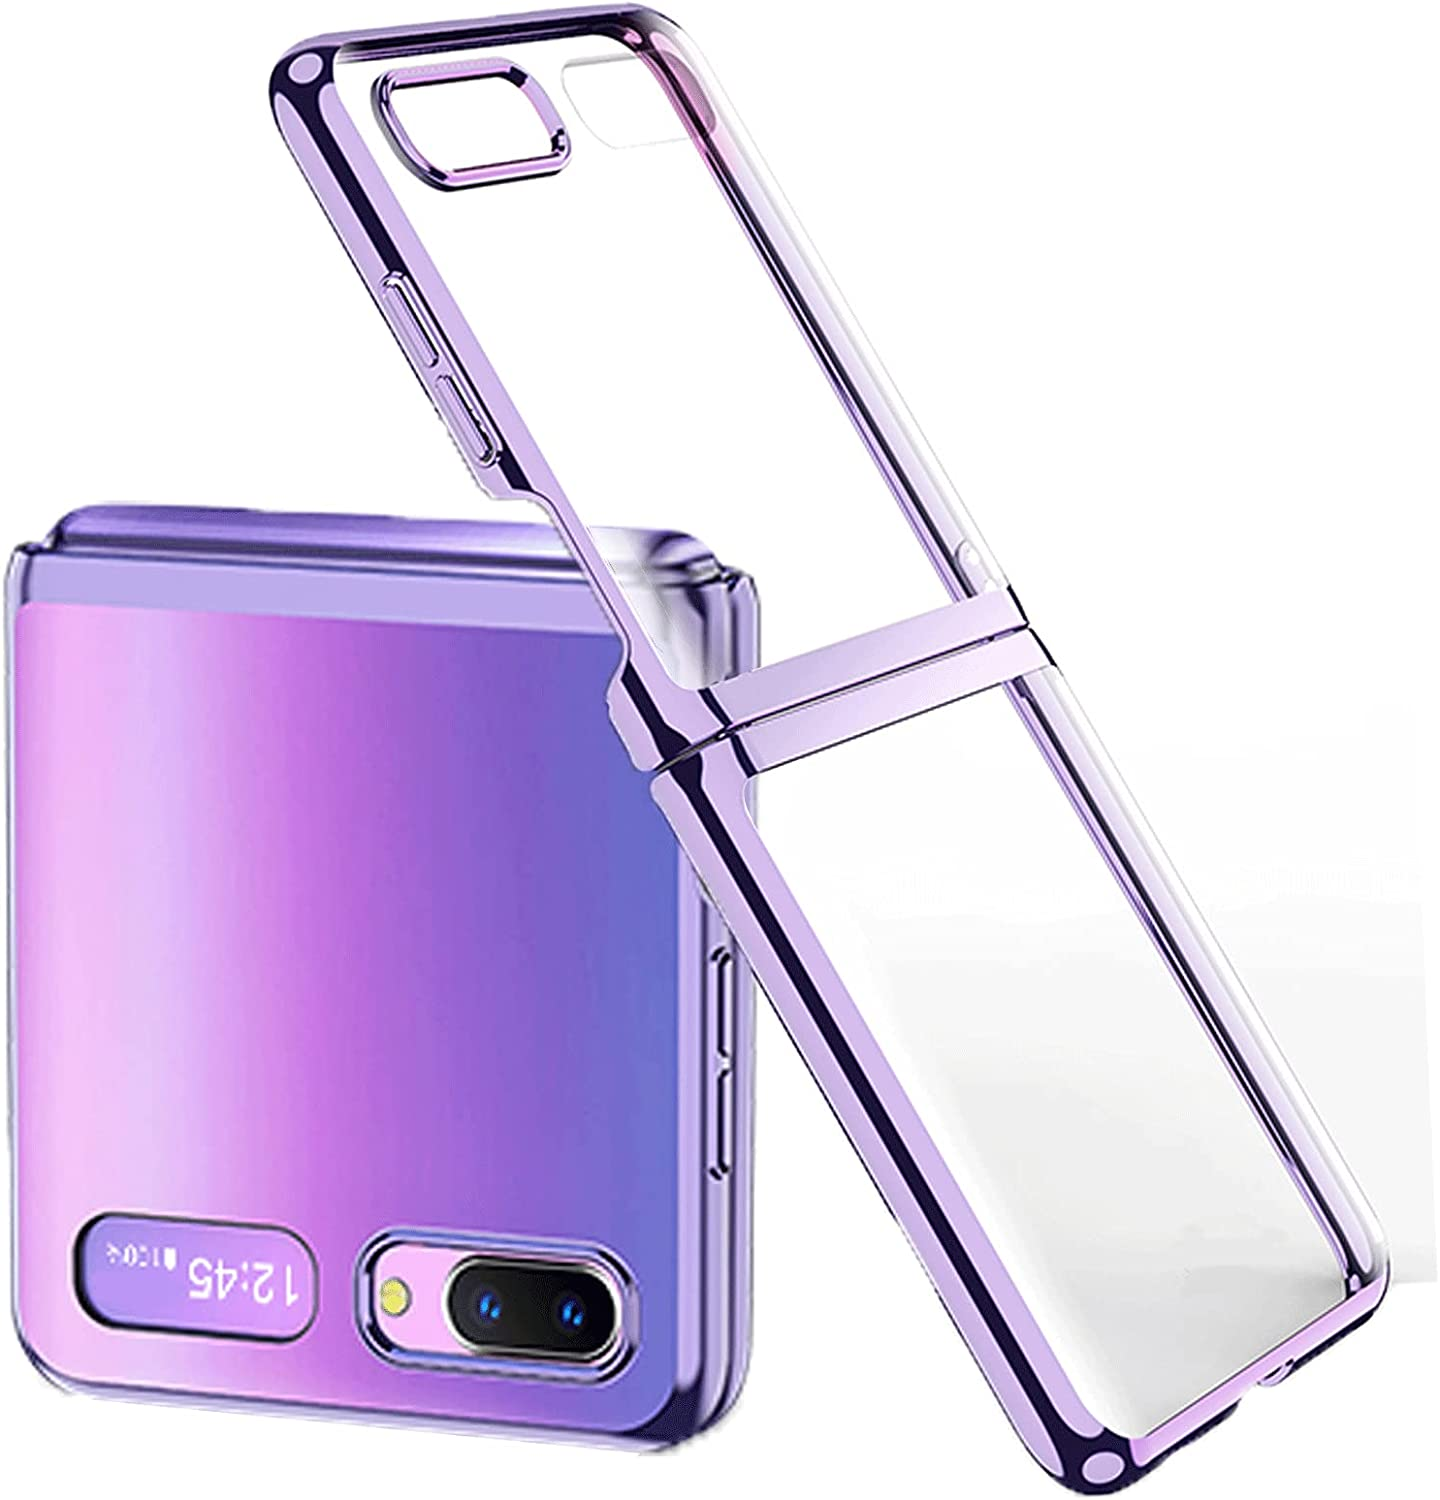 Miimall Compatible with Samsung Galaxy Z Flip 5G 2020 Case,Ultra-Thin Heat Dissipation 180 Degree Folding,Anti-Scratch and Anti-Shock Polycarbonate Case for Galaxy Z Flip (Purple)